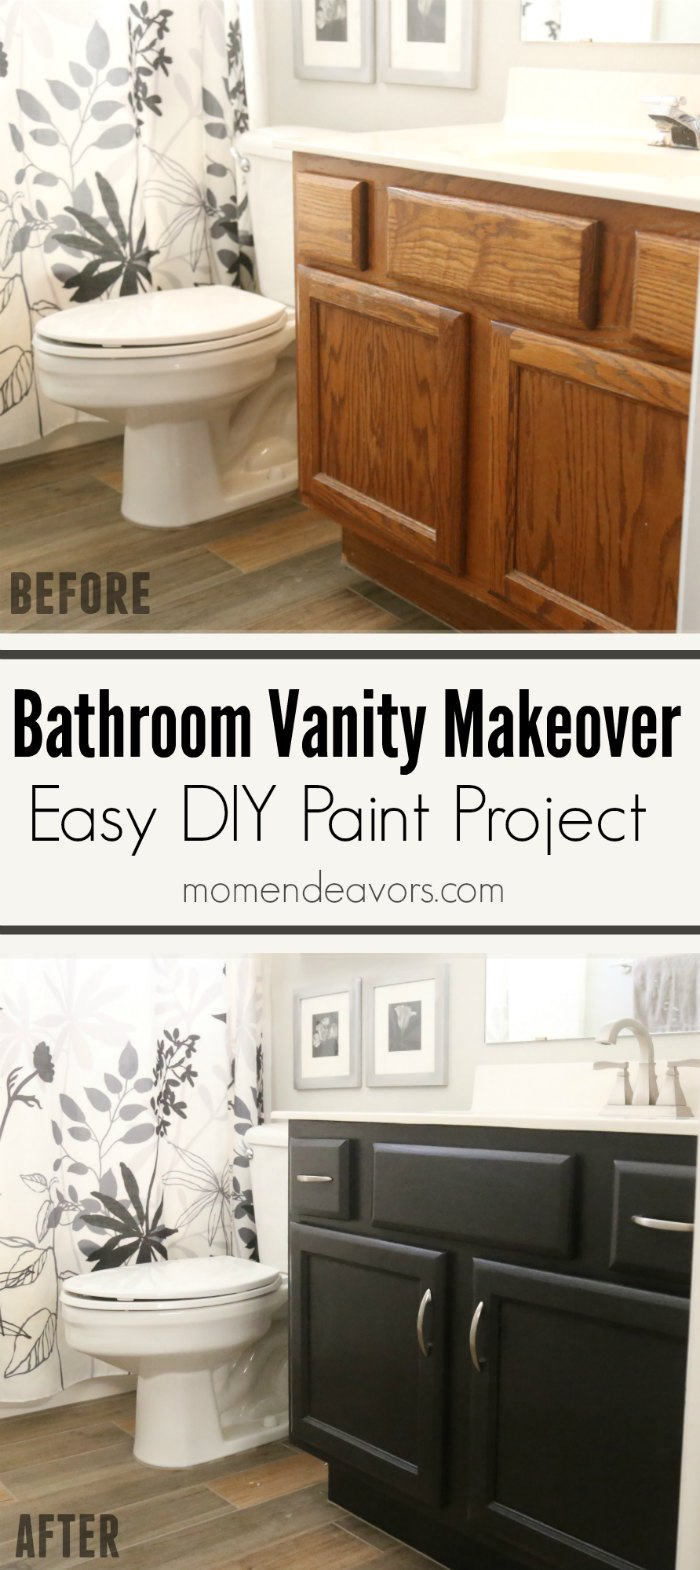 paint bathroom cabinets black bathroom vanity makeover easy diy home paint project 24224